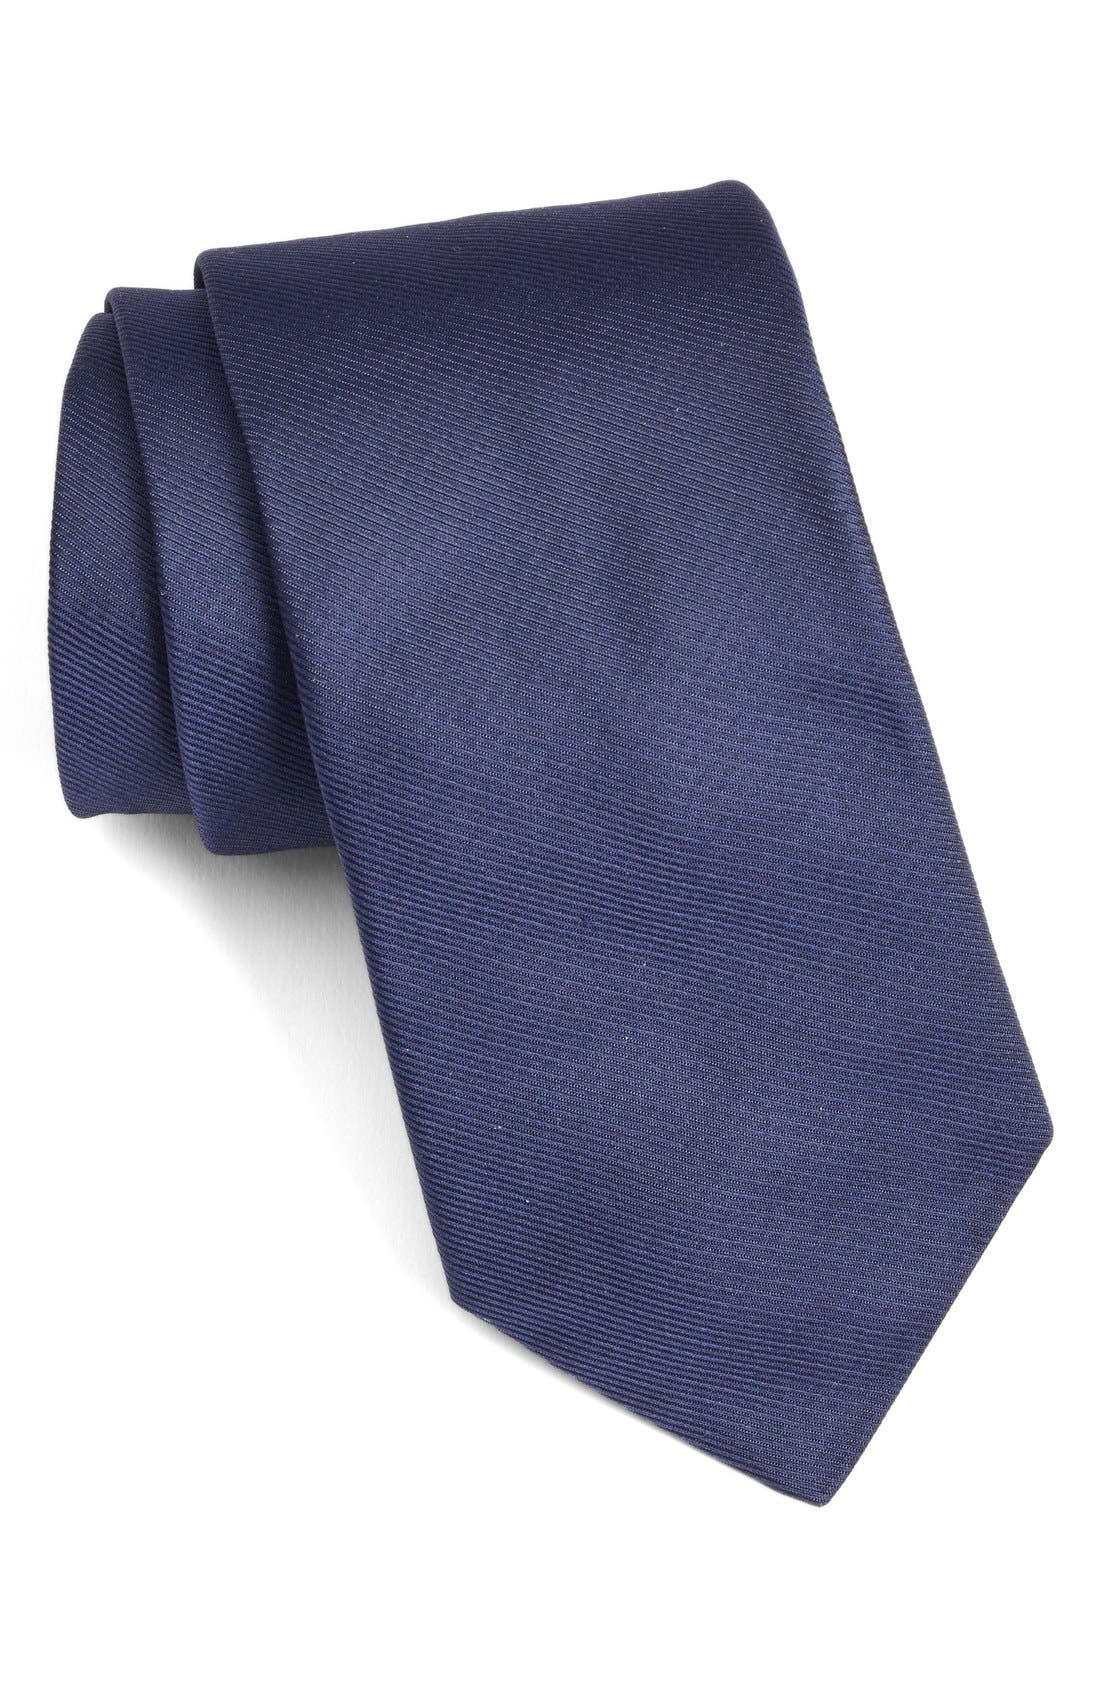 Solid Woven Silk Tie,                             Main thumbnail 1, color,